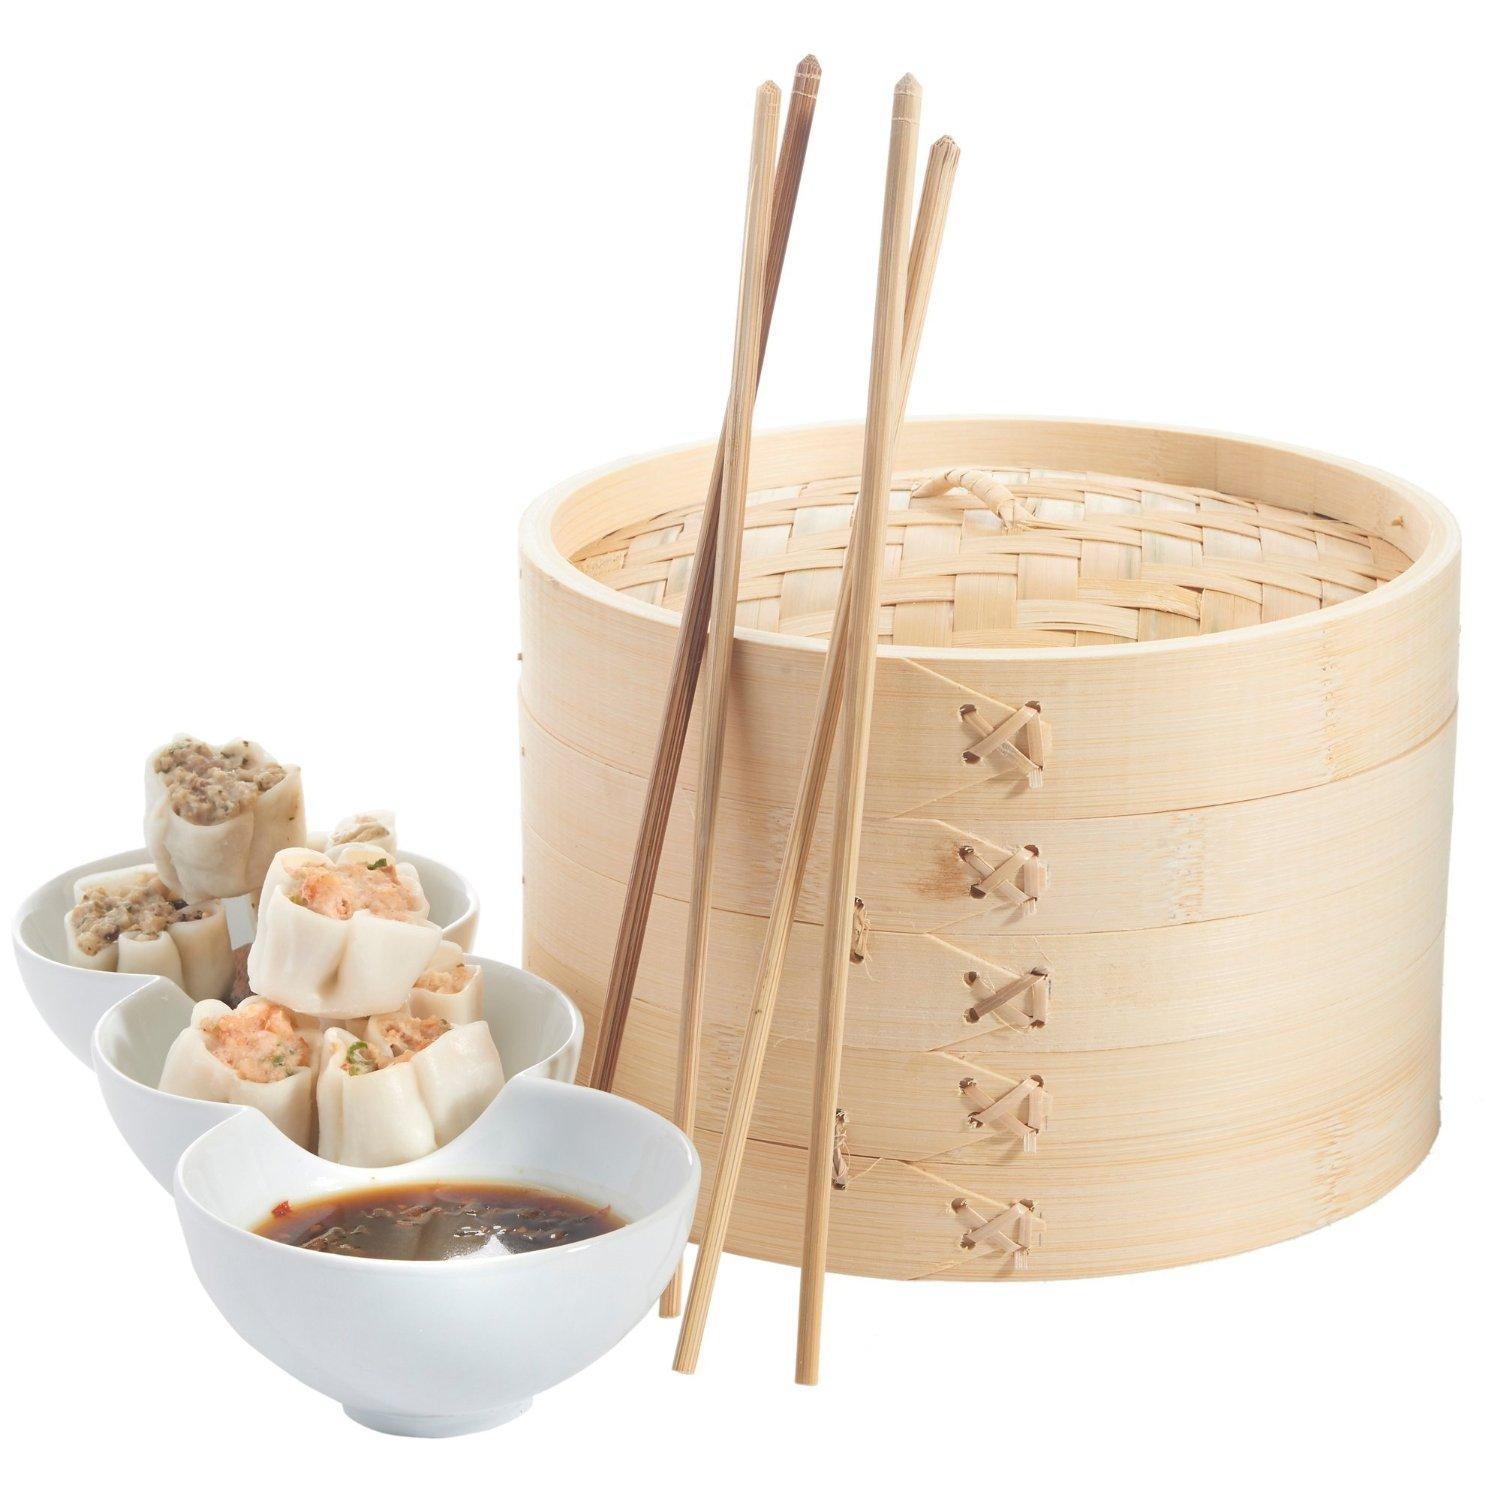 VonShef 10 Inch Bamboo Steamer Set with 2 x Free Chopsticks